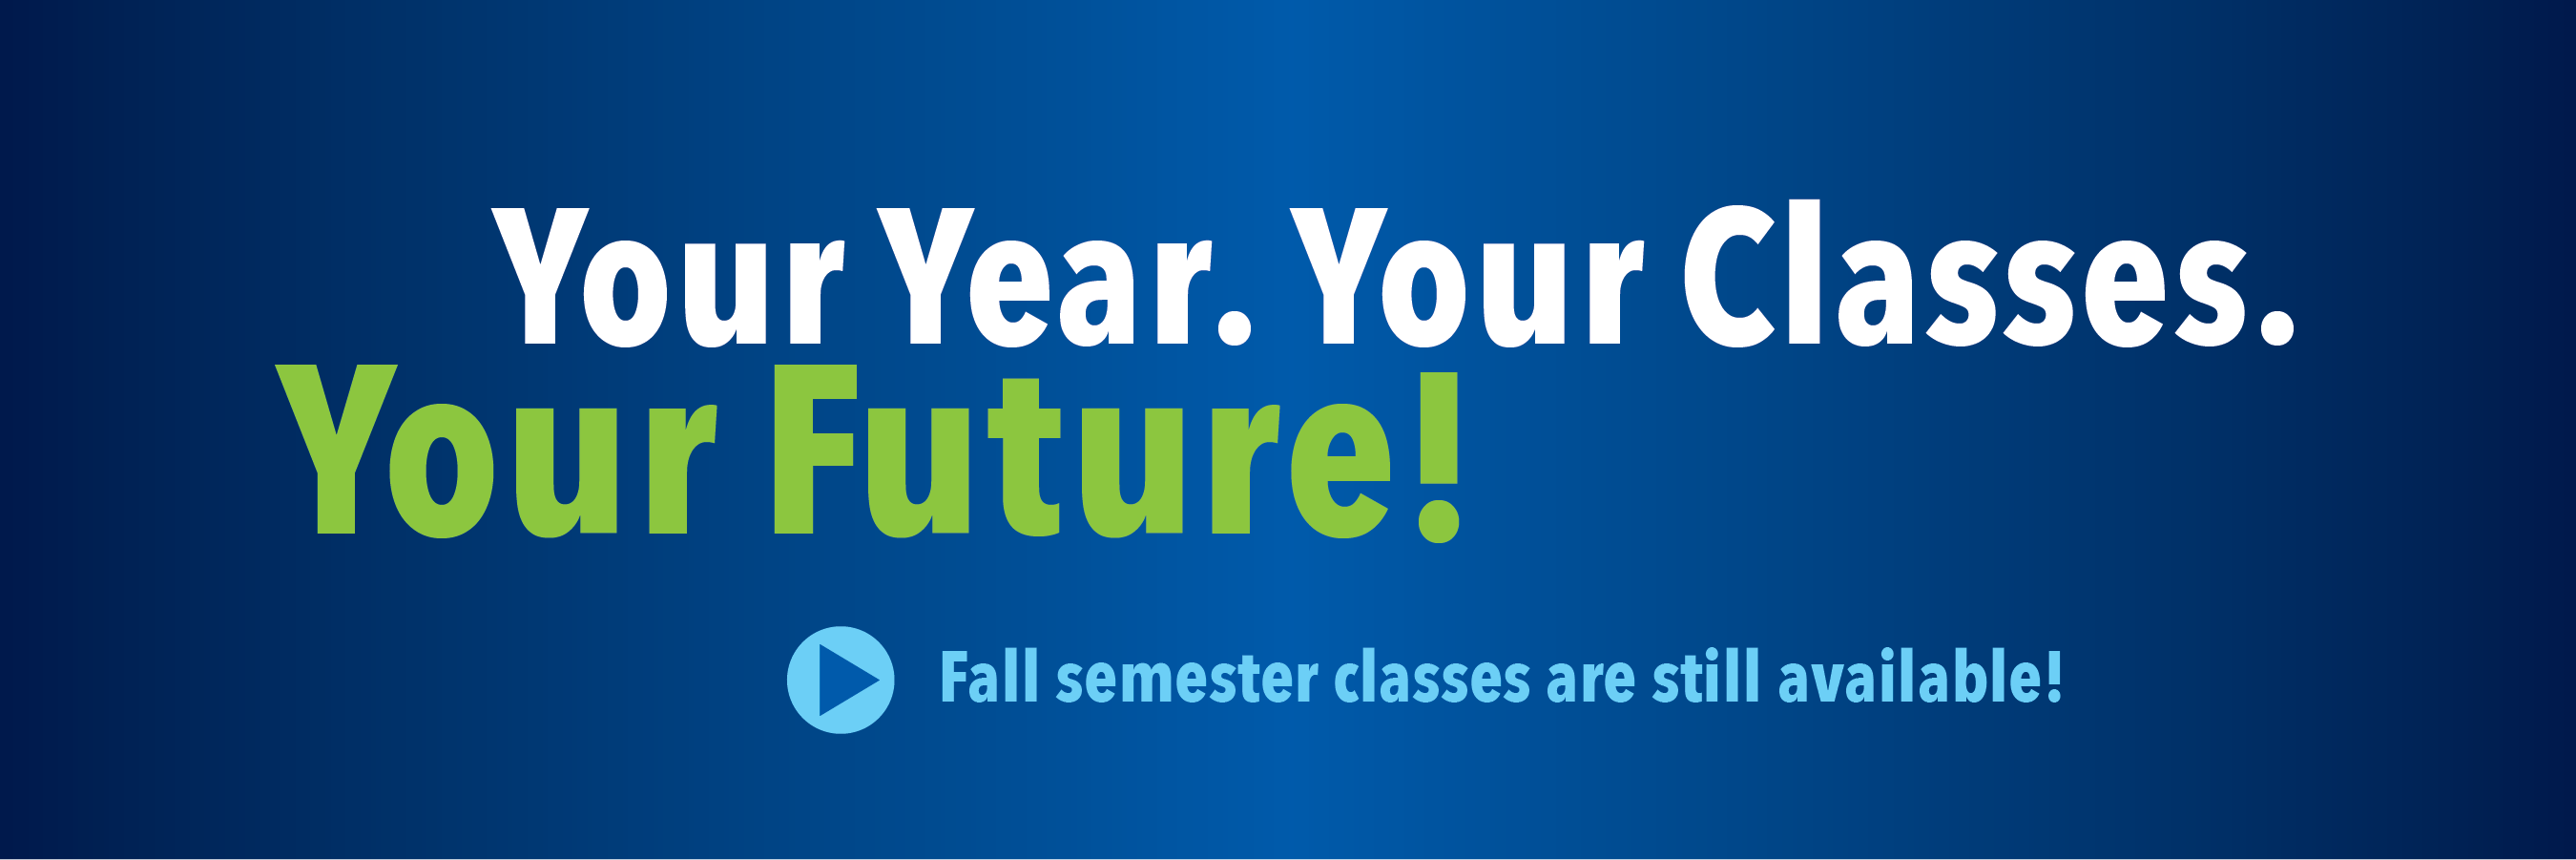 Your Year. Your Classes. Your Future. Fall Semester classes are still available.